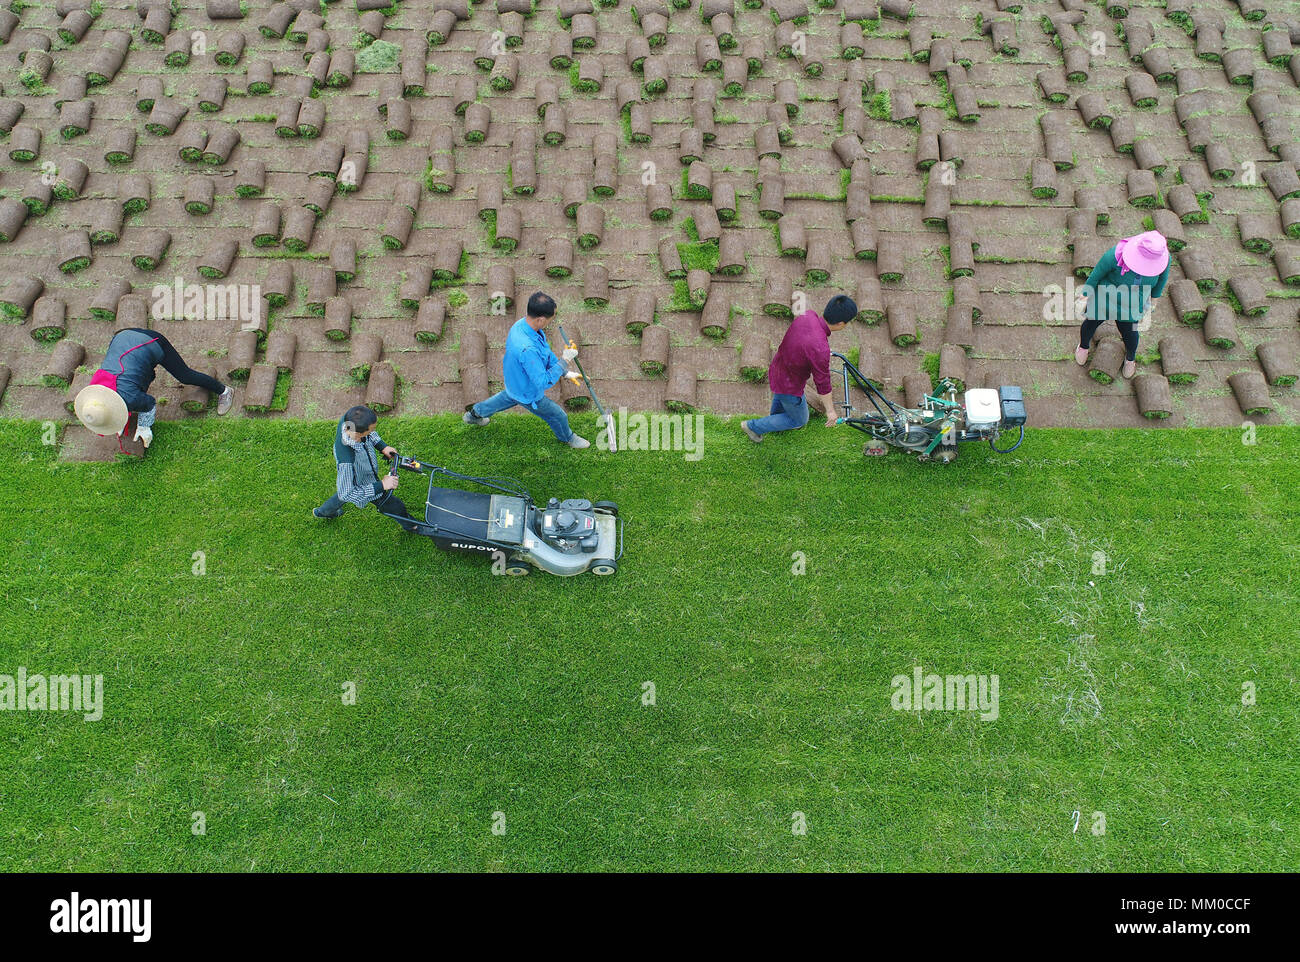 Xi'an. 9th May, 2018. In this aerial photo taken on May 9, 2018 shows villagers reap and roll up turfs in Fujiang Village of Yinzhen Neighbourhood in Xi'an, northwest China's Shaanxi Province. The need for turfs during China's urbanization process has driven farmers in Yinzhen Neighbourhood to invest in the turf business. Credit: Shao Rui/Xinhua/Alamy Live News - Stock Image